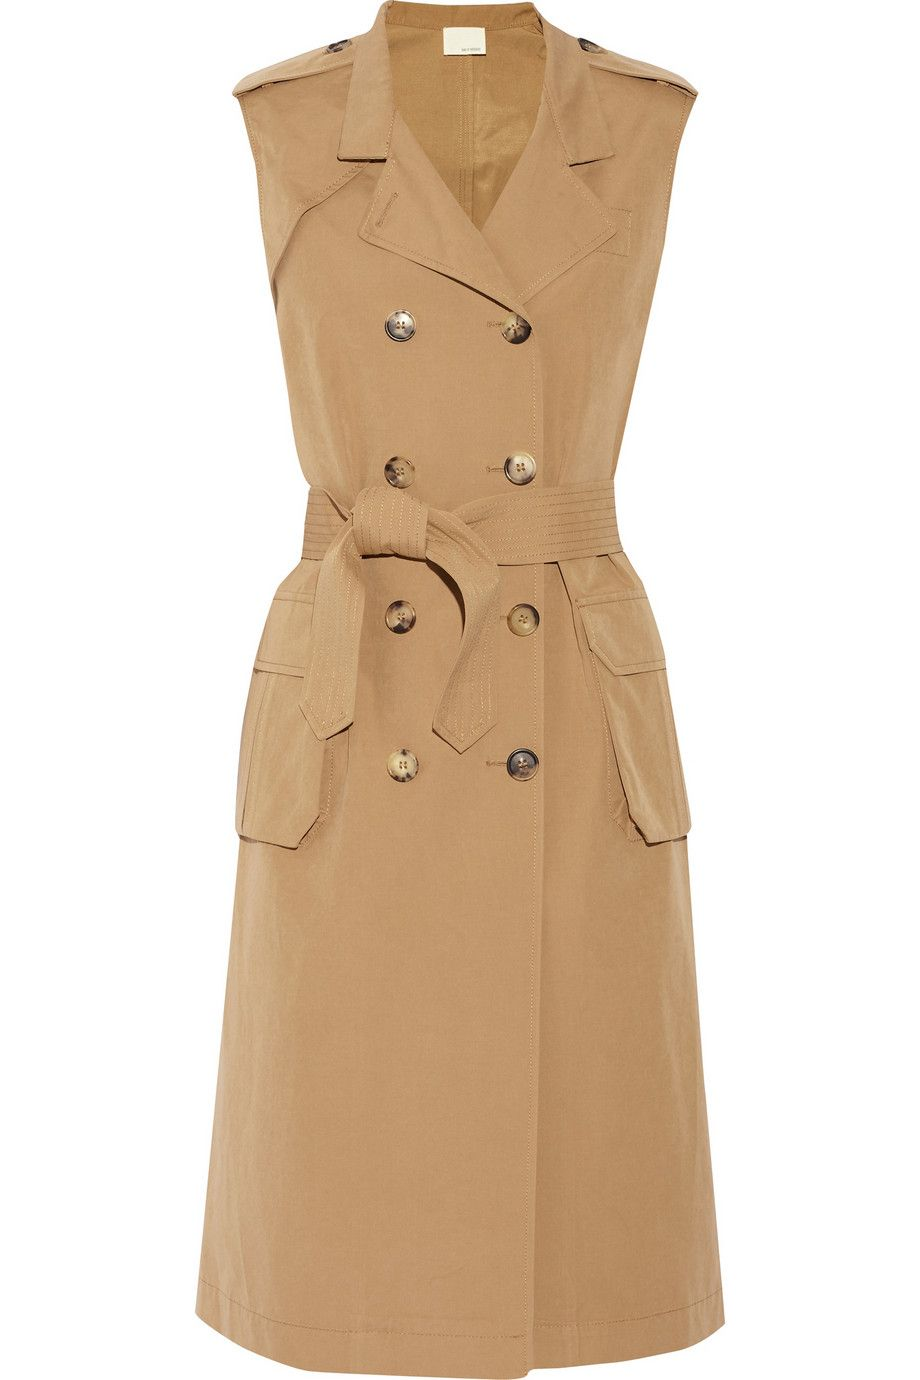 Image result for band of outsiders cotton blend trench coat